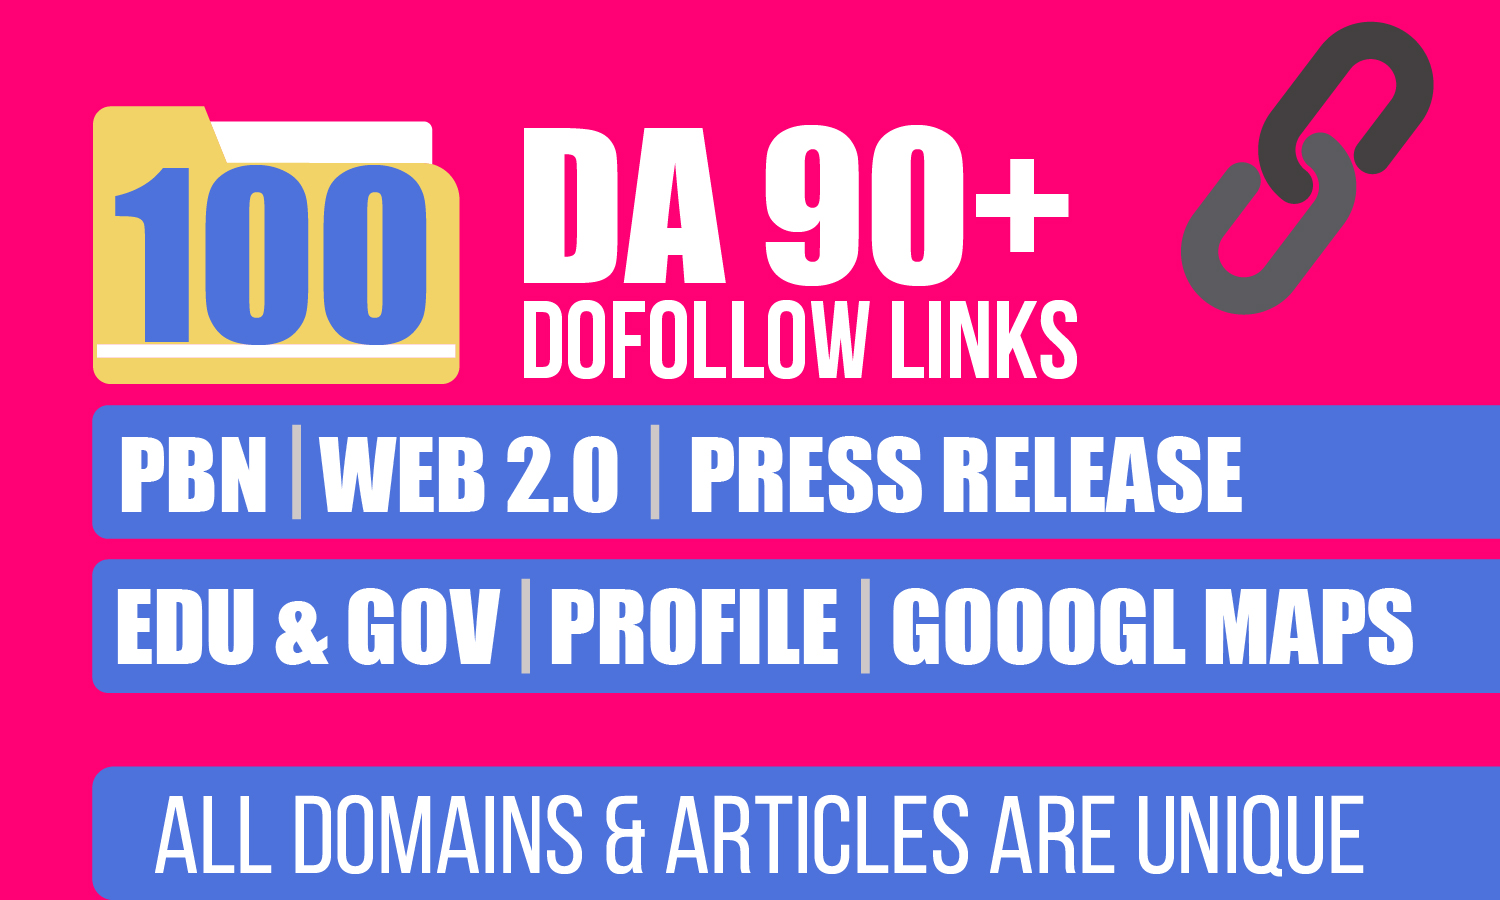 Great Offer For 1 Week,  Google Safe Manually 100+ DA 95+ High Quality SEO Dofollow Backlinks